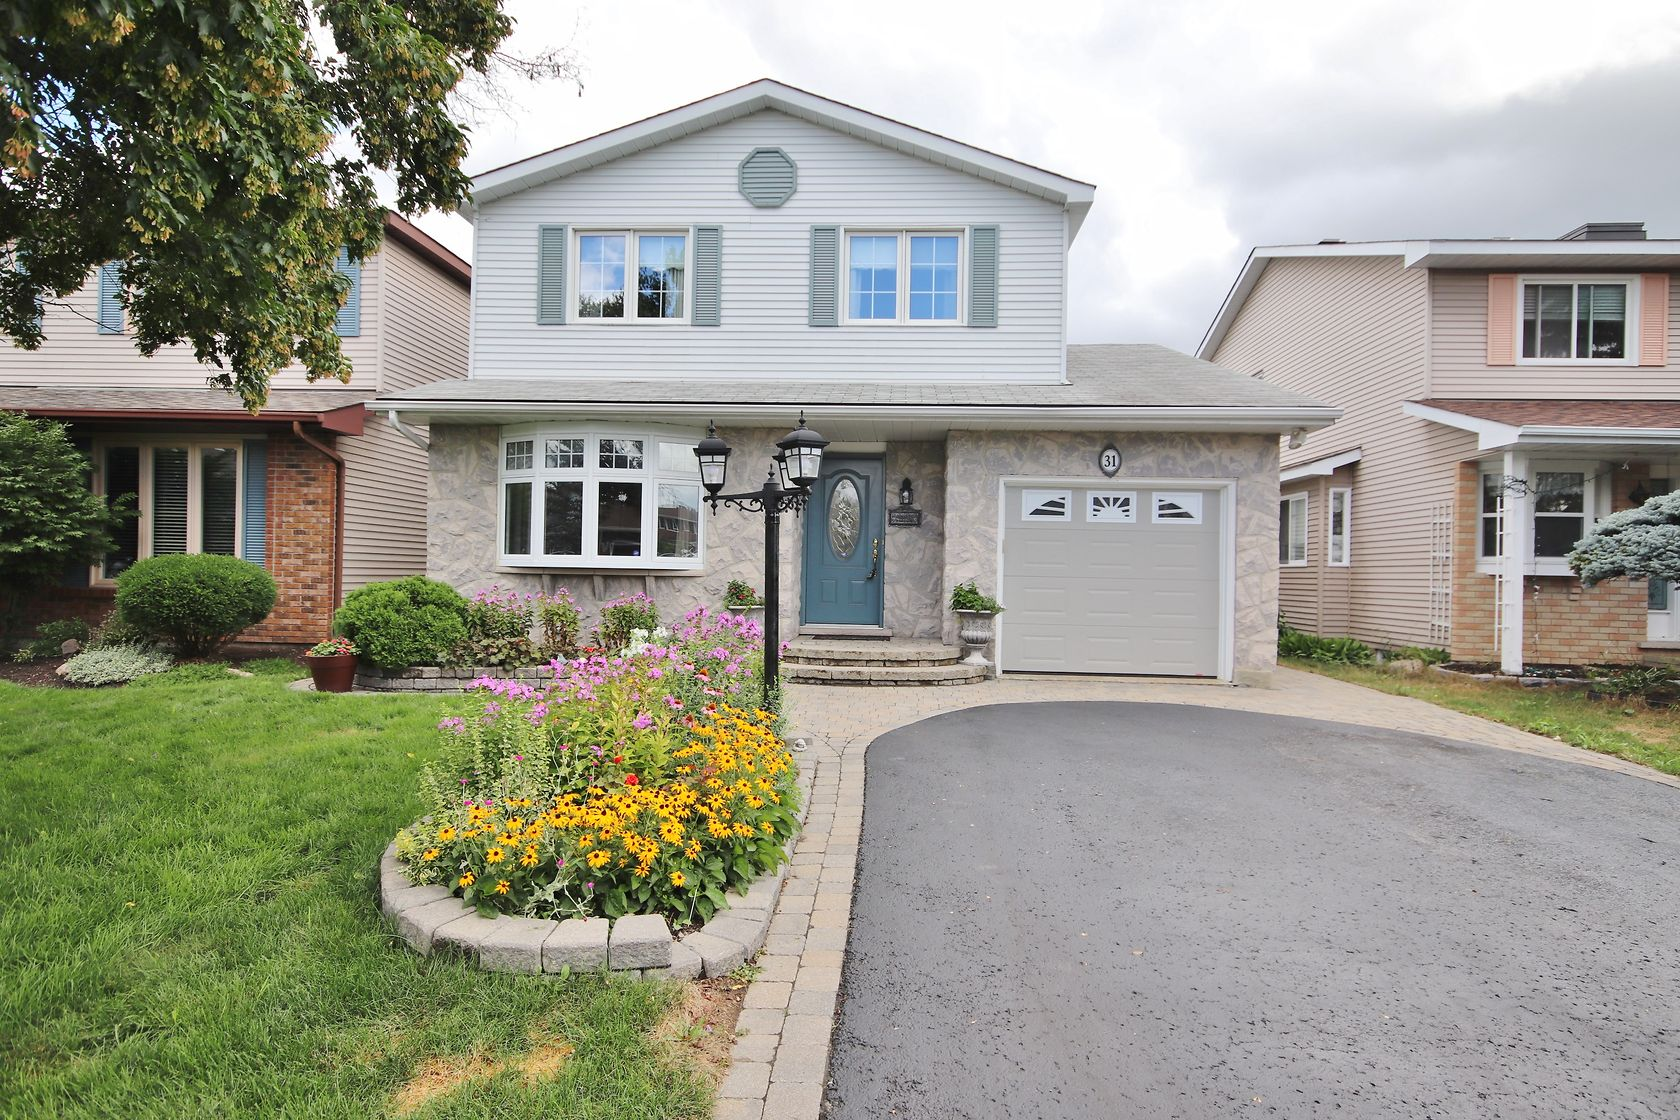 31 Ivylea St - Lovely 4 Bed, 3.5 Bath Home on quiet street in popular Craig Henry!